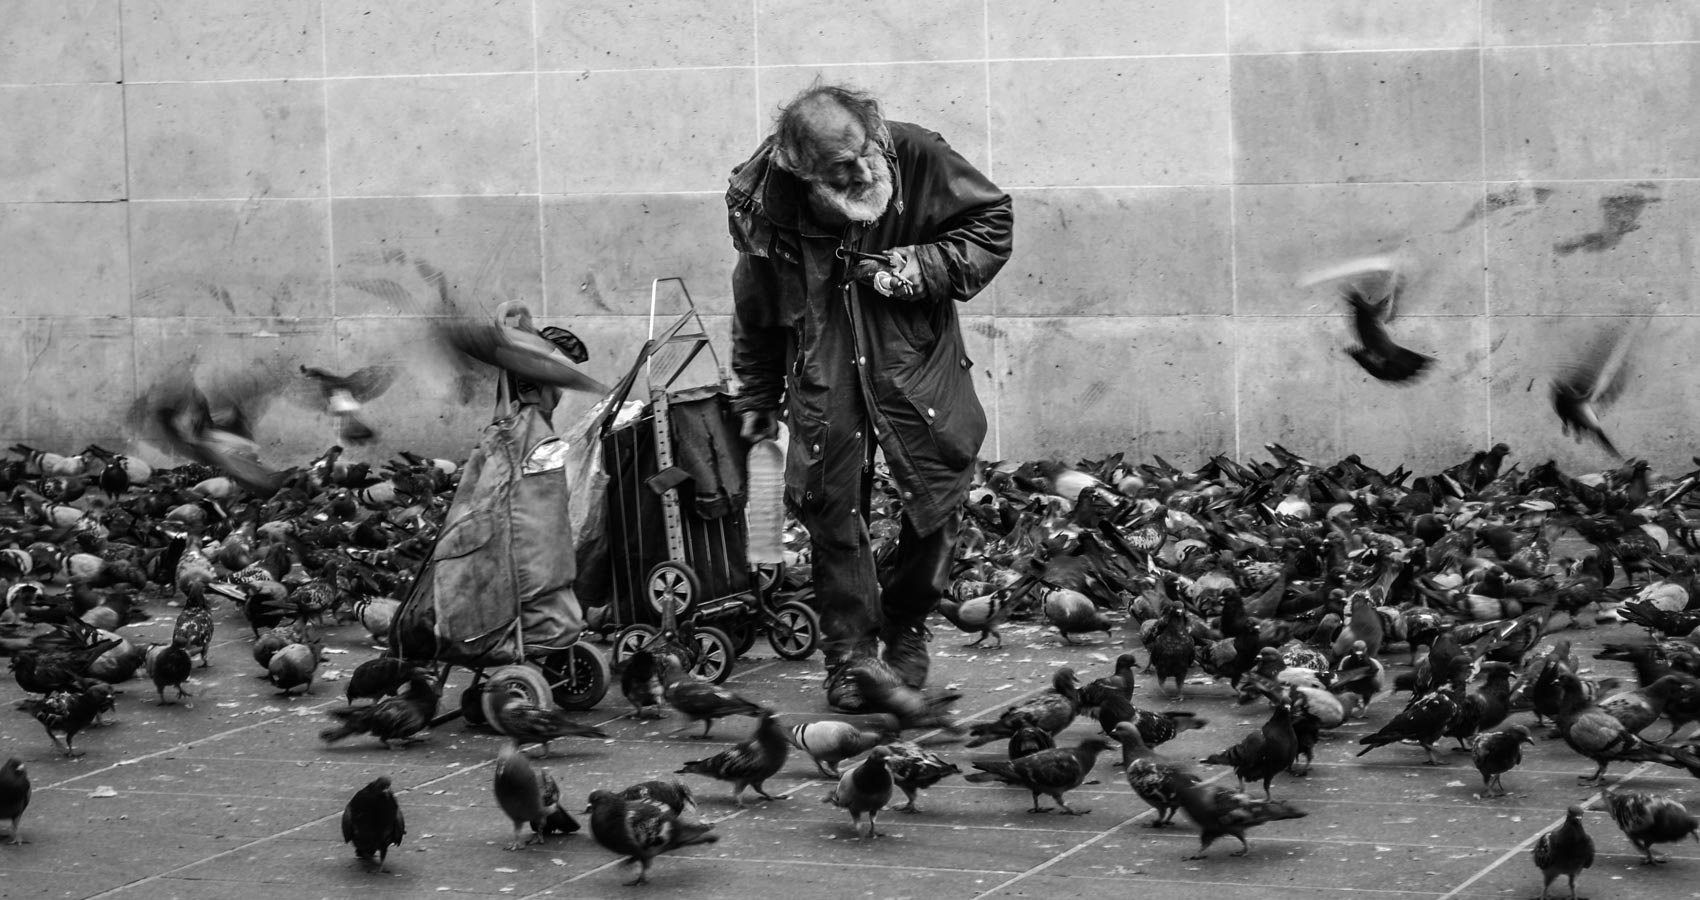 A Mendicant's Perspective, a poem by Bilquis Fatima at Spillwords.com